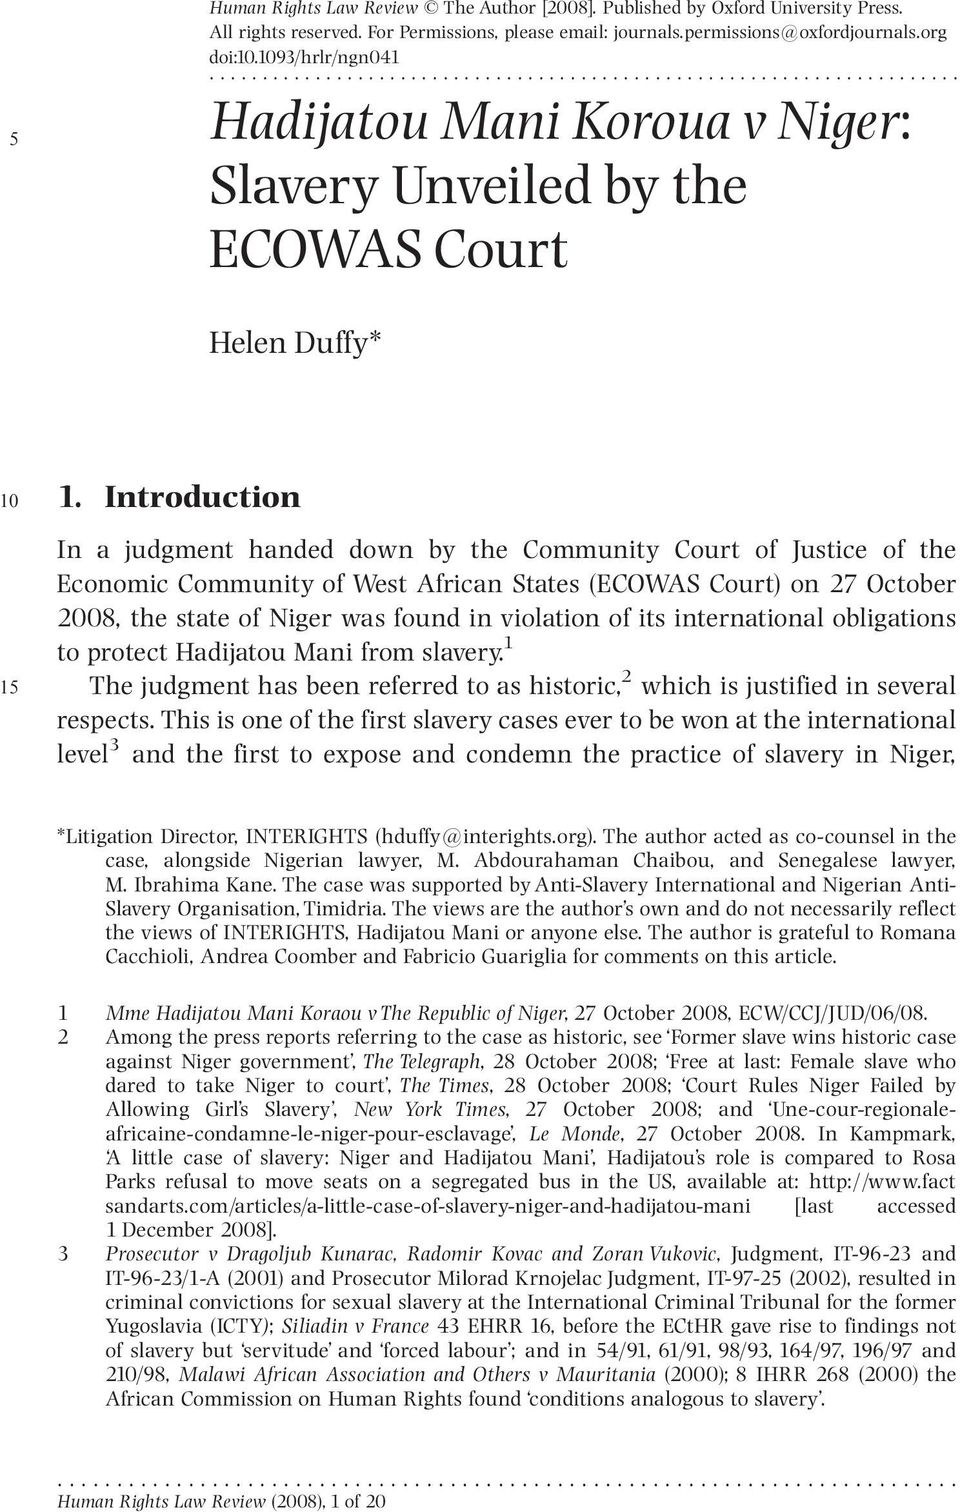 Introduction In a judgment handed down by the Community Court of Justice of the Economic Community of West African States (ECOWAS Court) on 27 October 2008, the state of Niger was found in violation